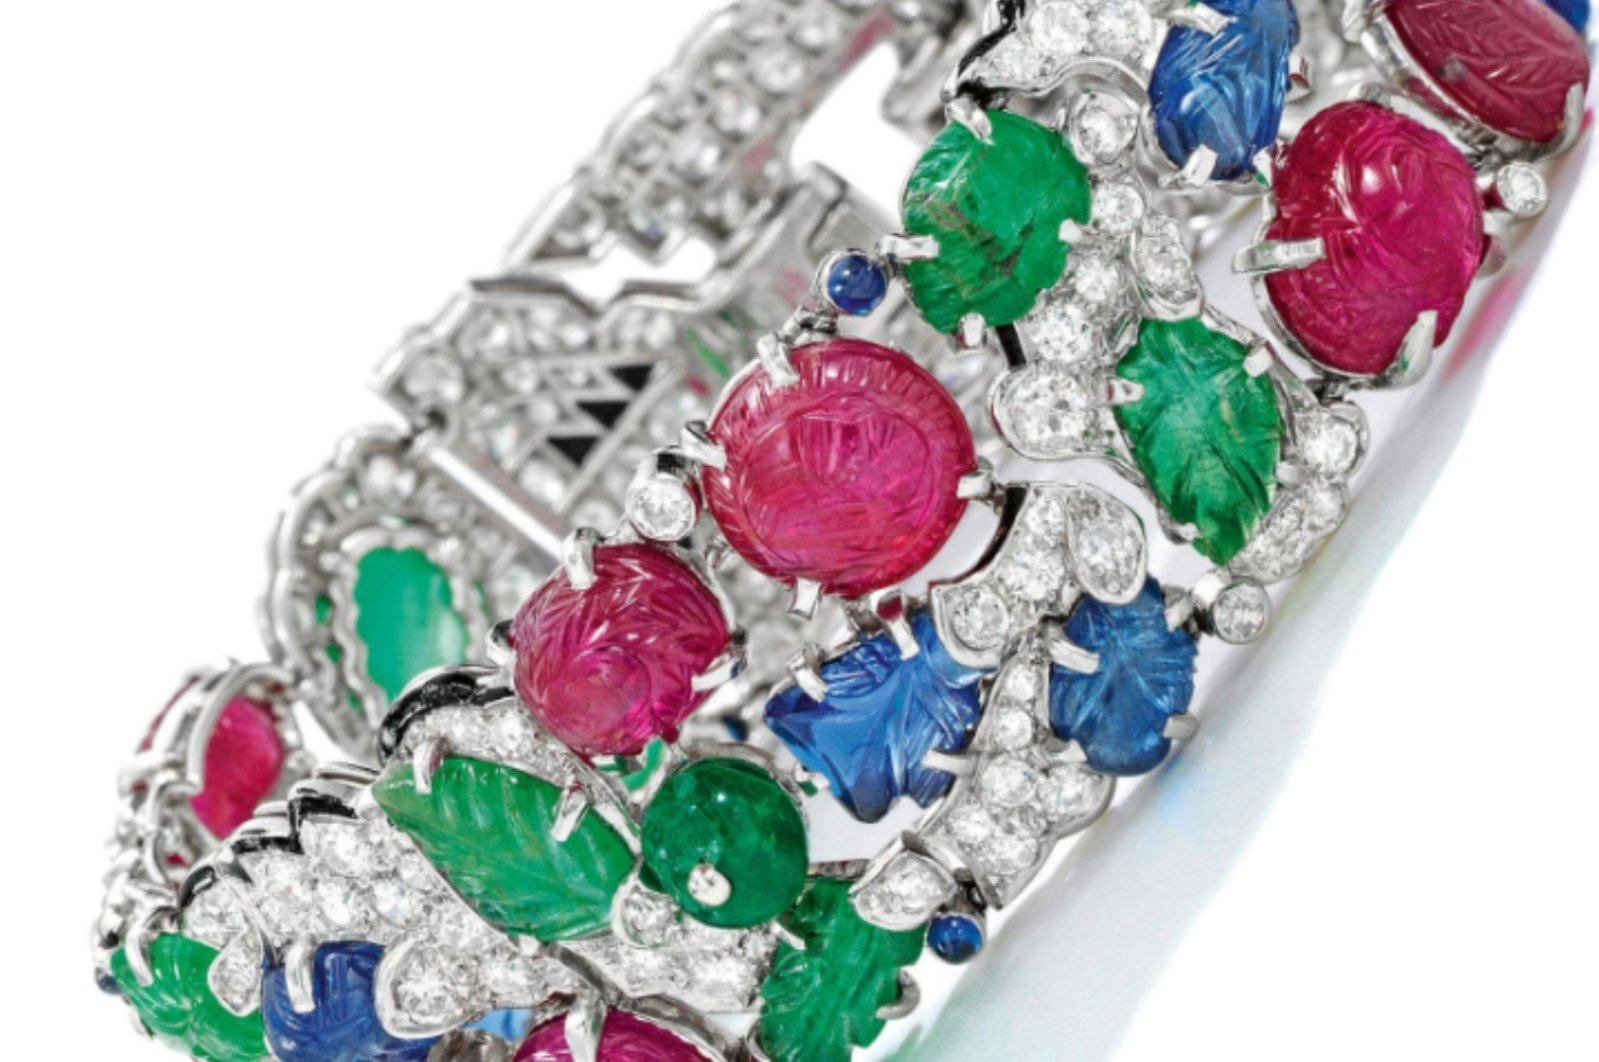 """Cartier's """"Tutti-Frutti"""" bracelet seen in this undated photo. (Photo from Sotheby's official Instagram account)"""